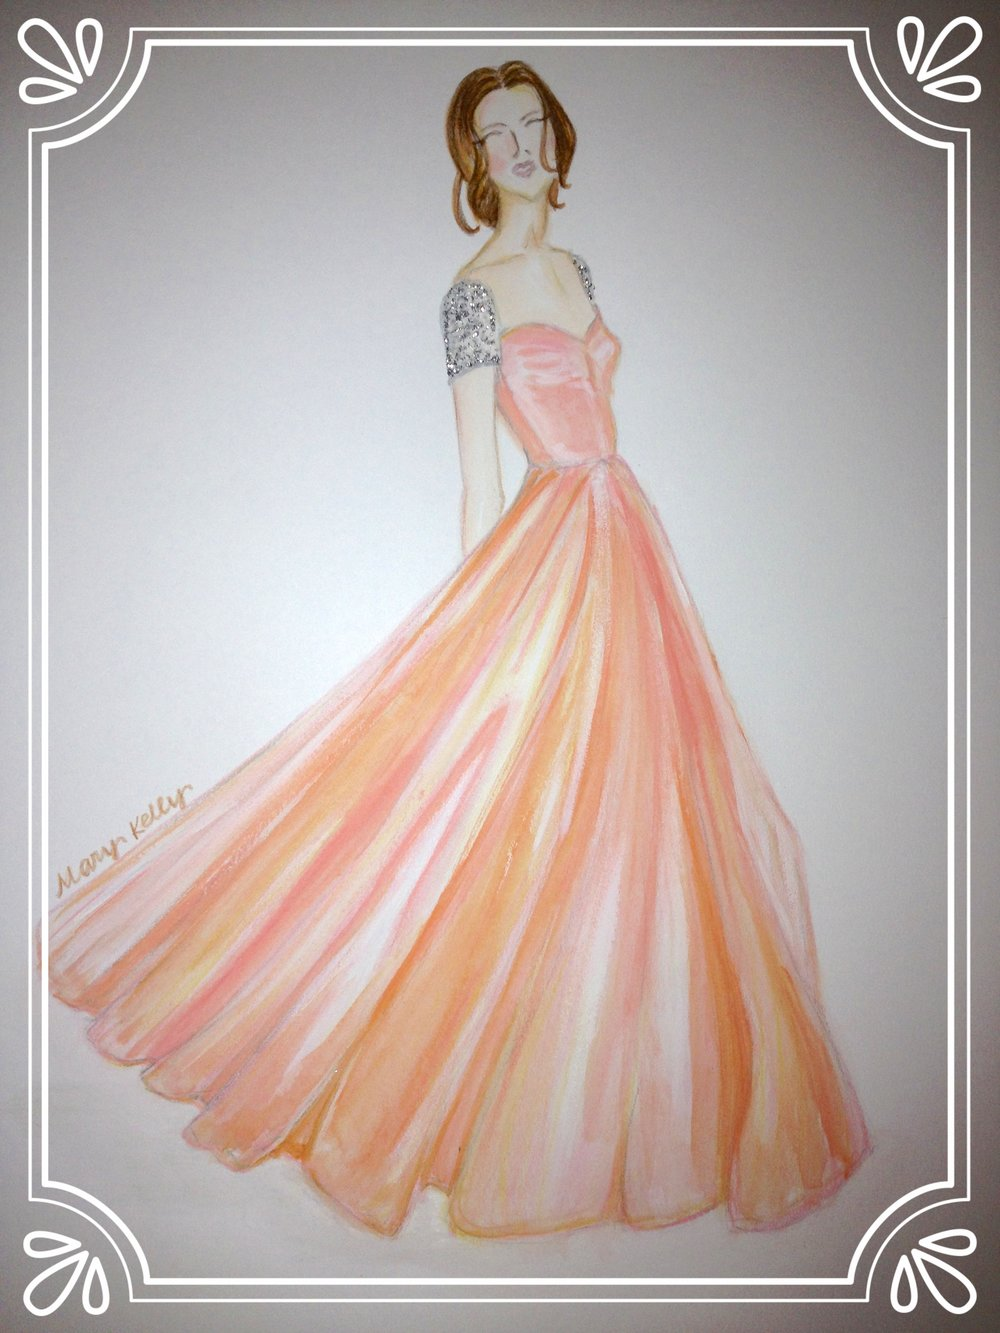 peach dress with bling sleeves, mary kelly designs © 2018